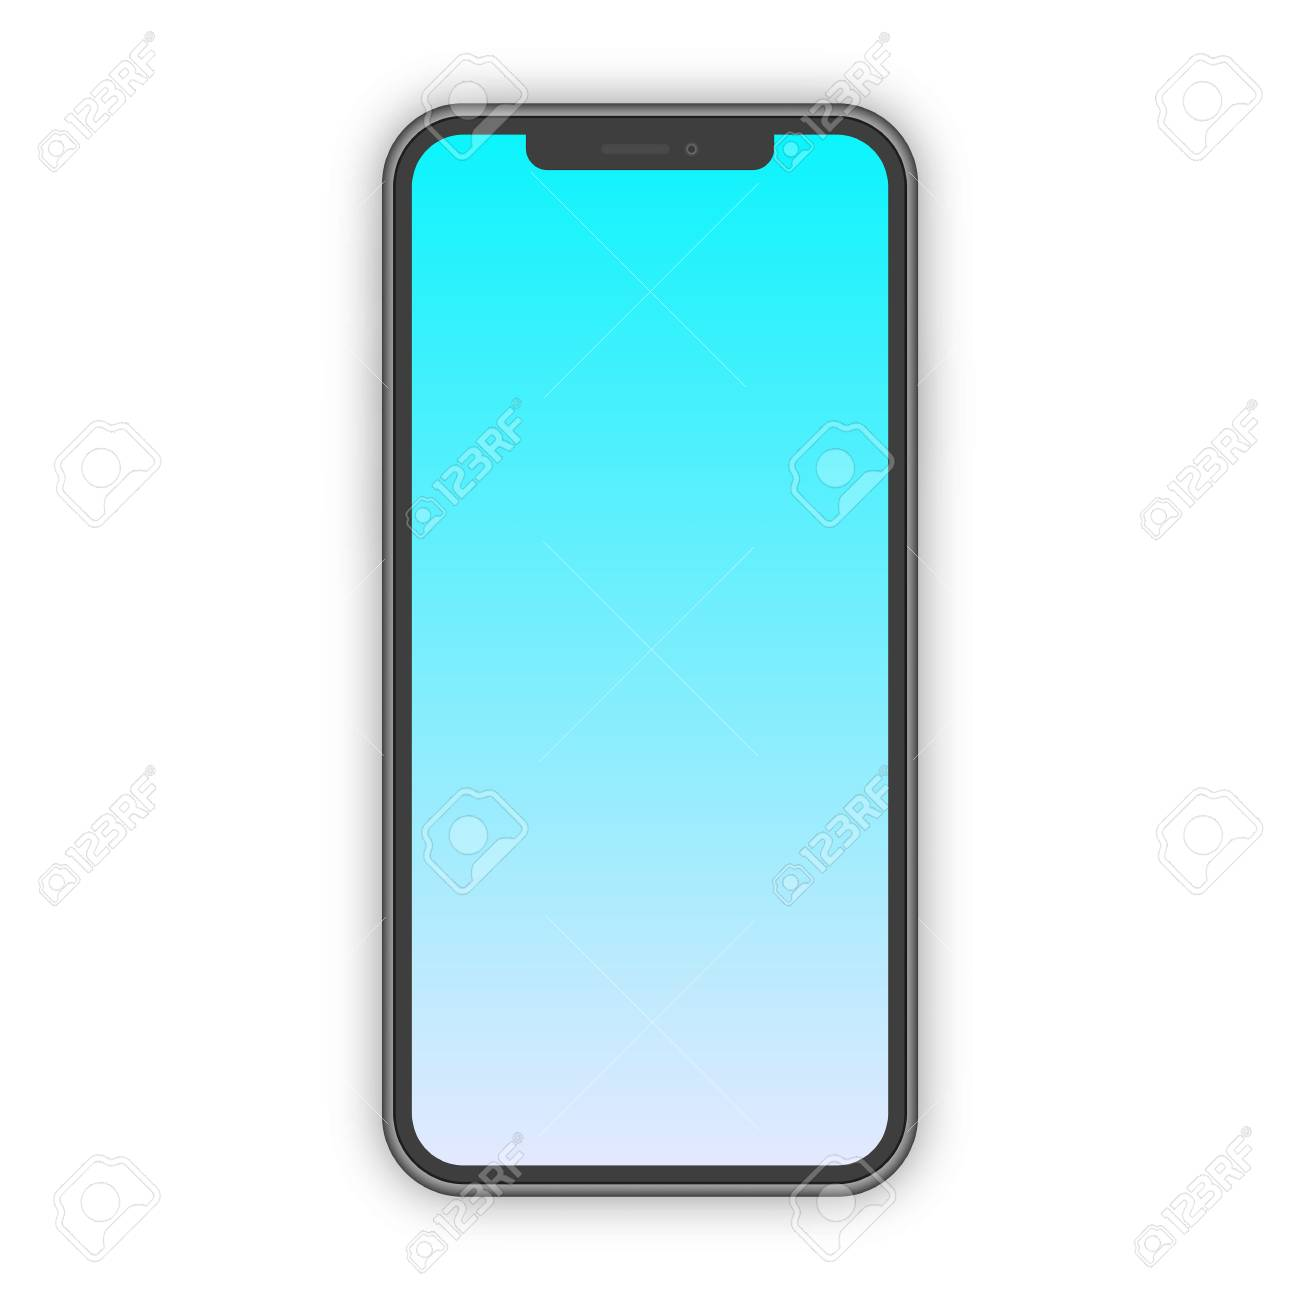 cea550f76f82ce Realistic smartphone mockup with trendy gradient screen isolated on  transparent background for ui elements, app